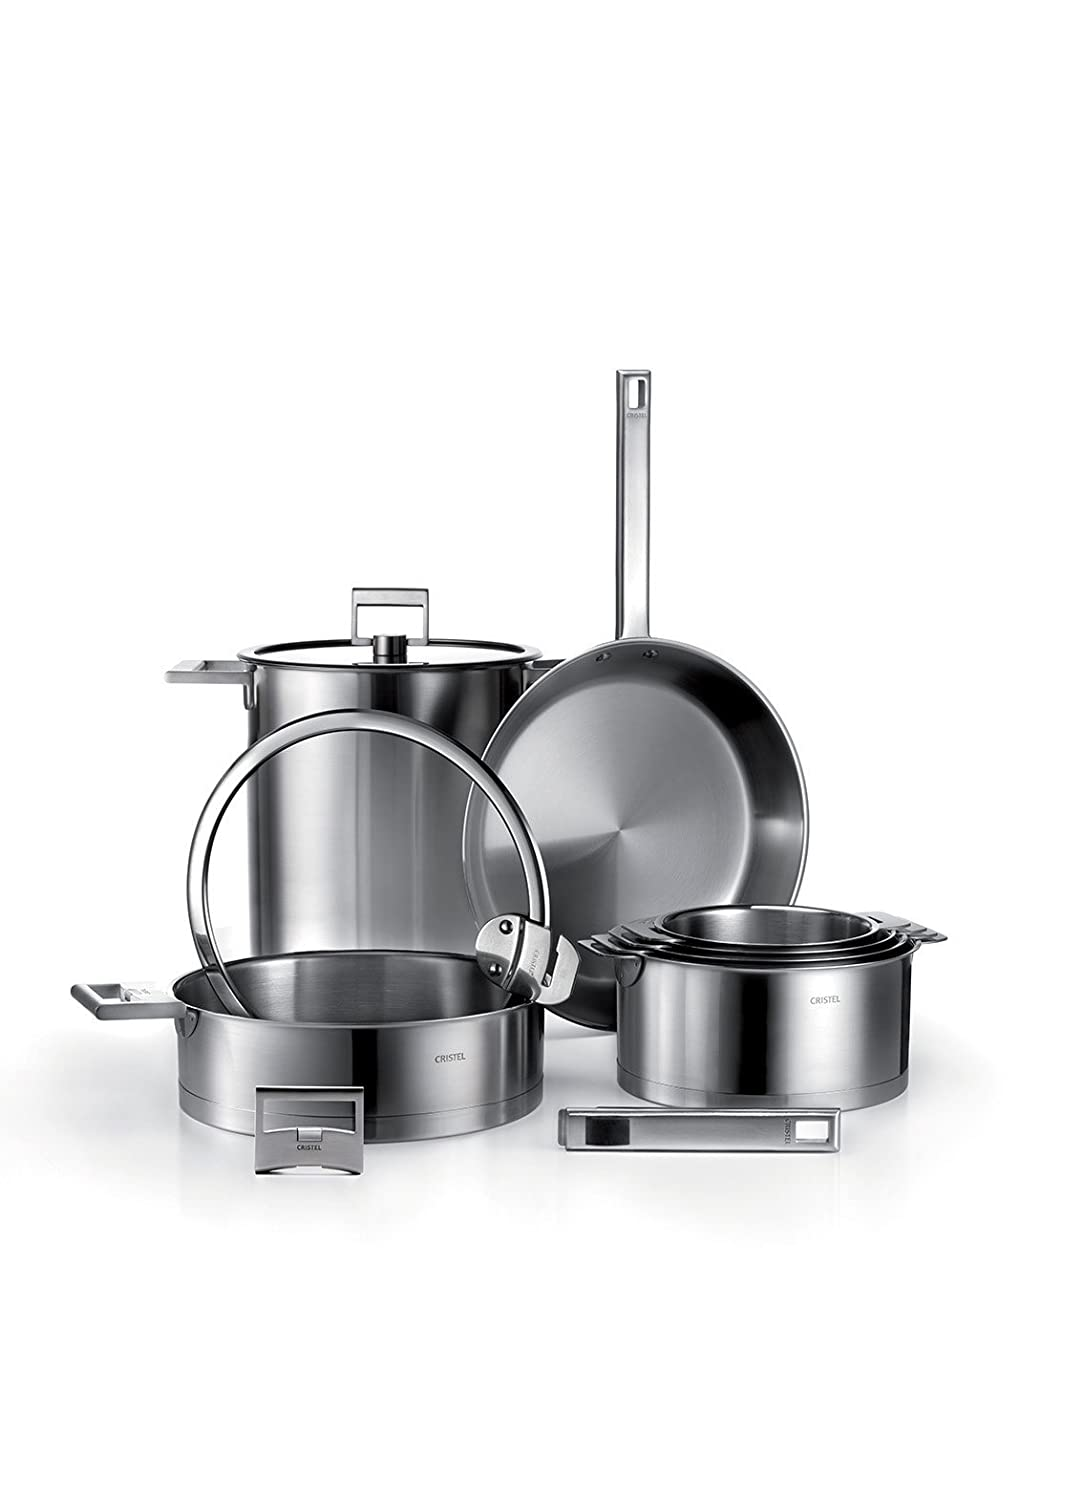 S24SFE Collection Strate Sauteuse inox 24cm Anti-adh/érent Exceliss+ Cristel couvercle